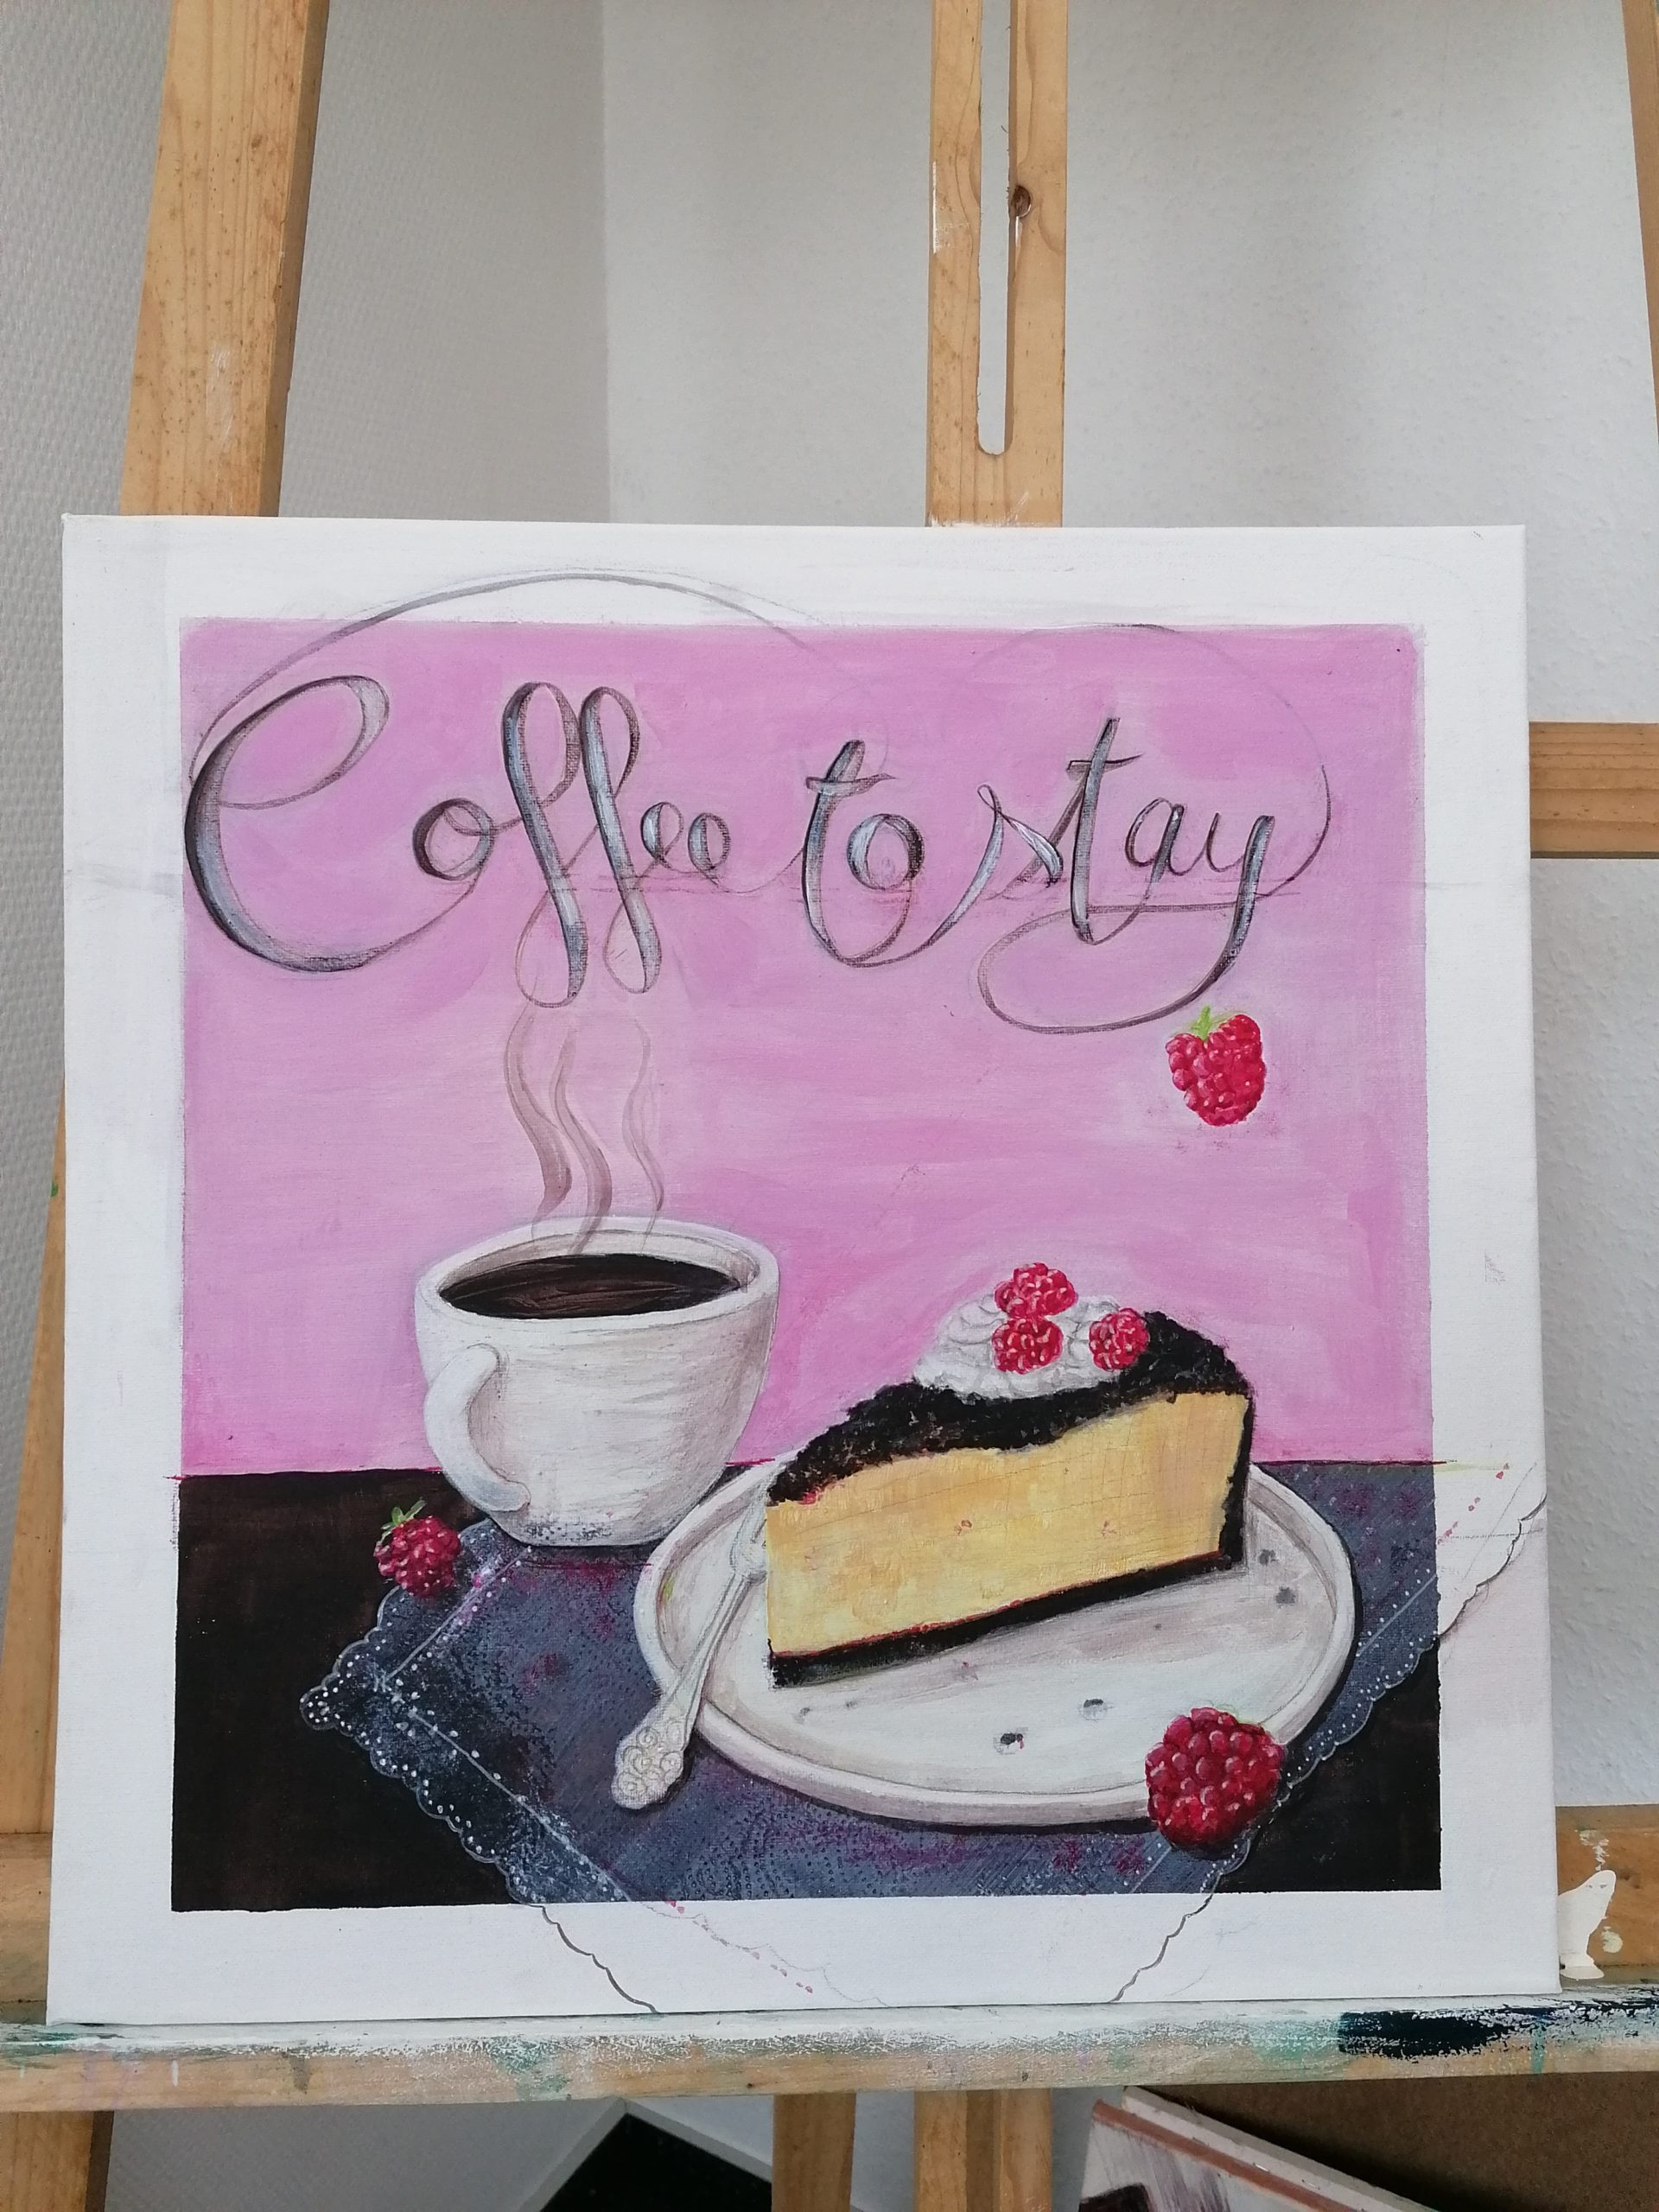 Coffe to stay watermixable oil + acryl